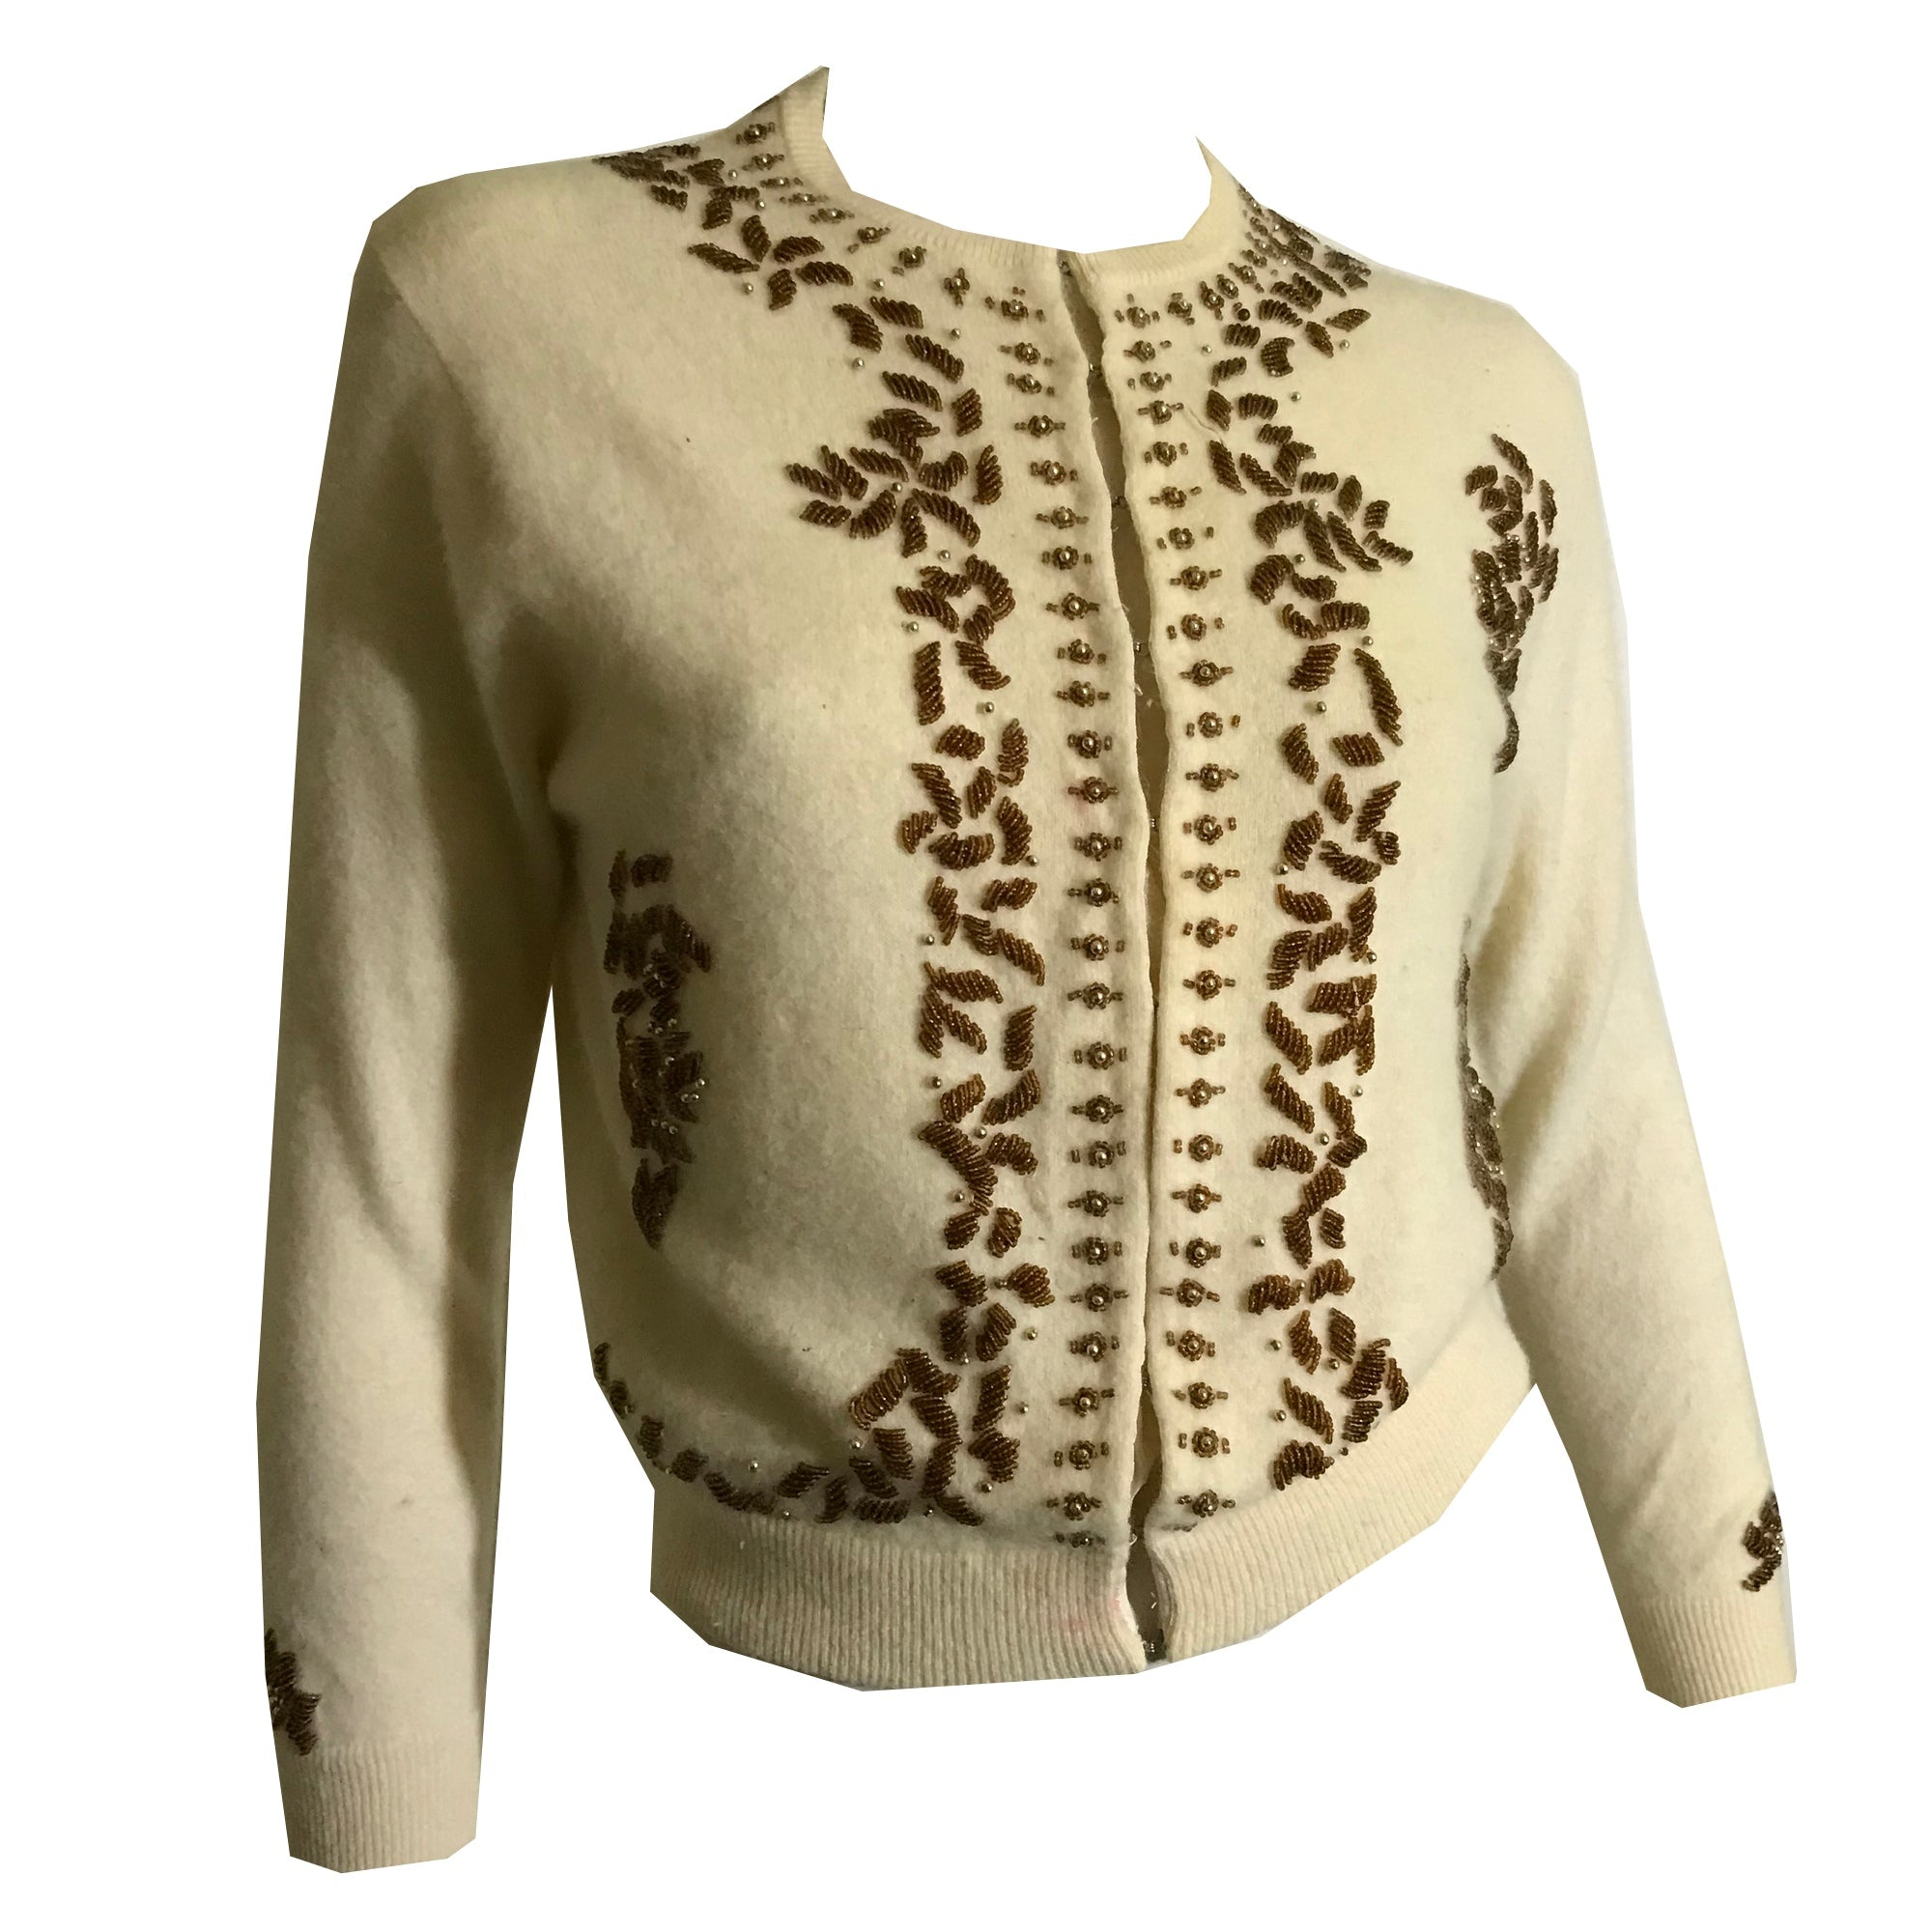 Candlelight Angora/Wool Blend Golden Beaded Sweater circa 1960s